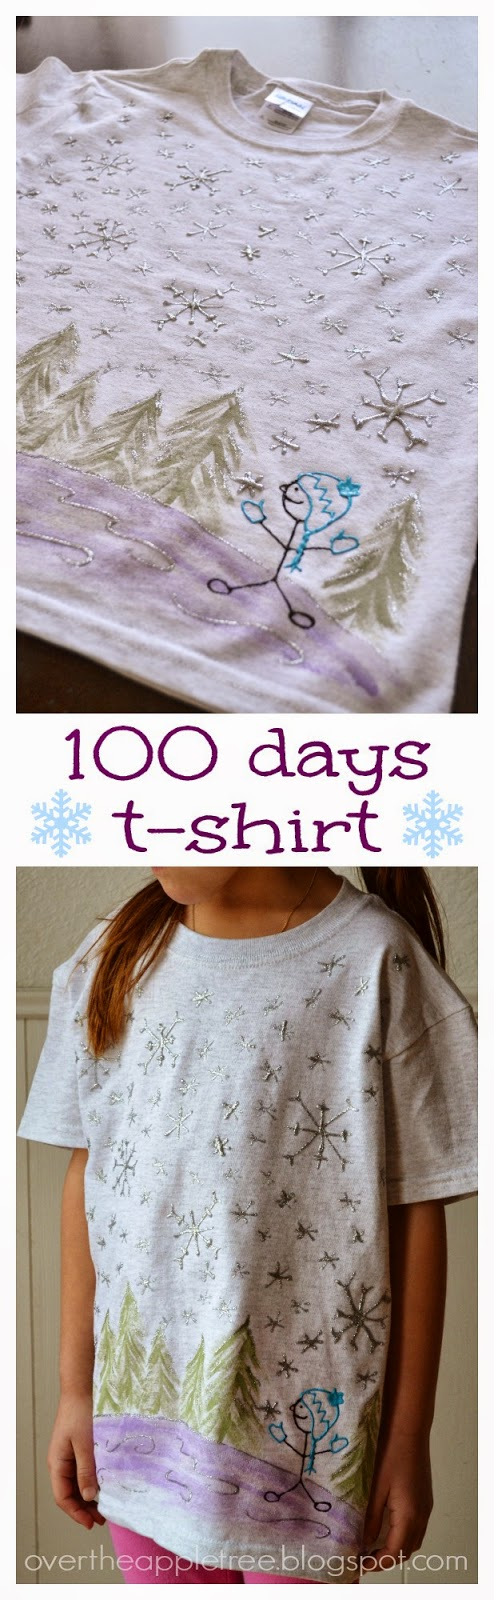 100 days of school t-shirt idea >> Over The Apple Tree